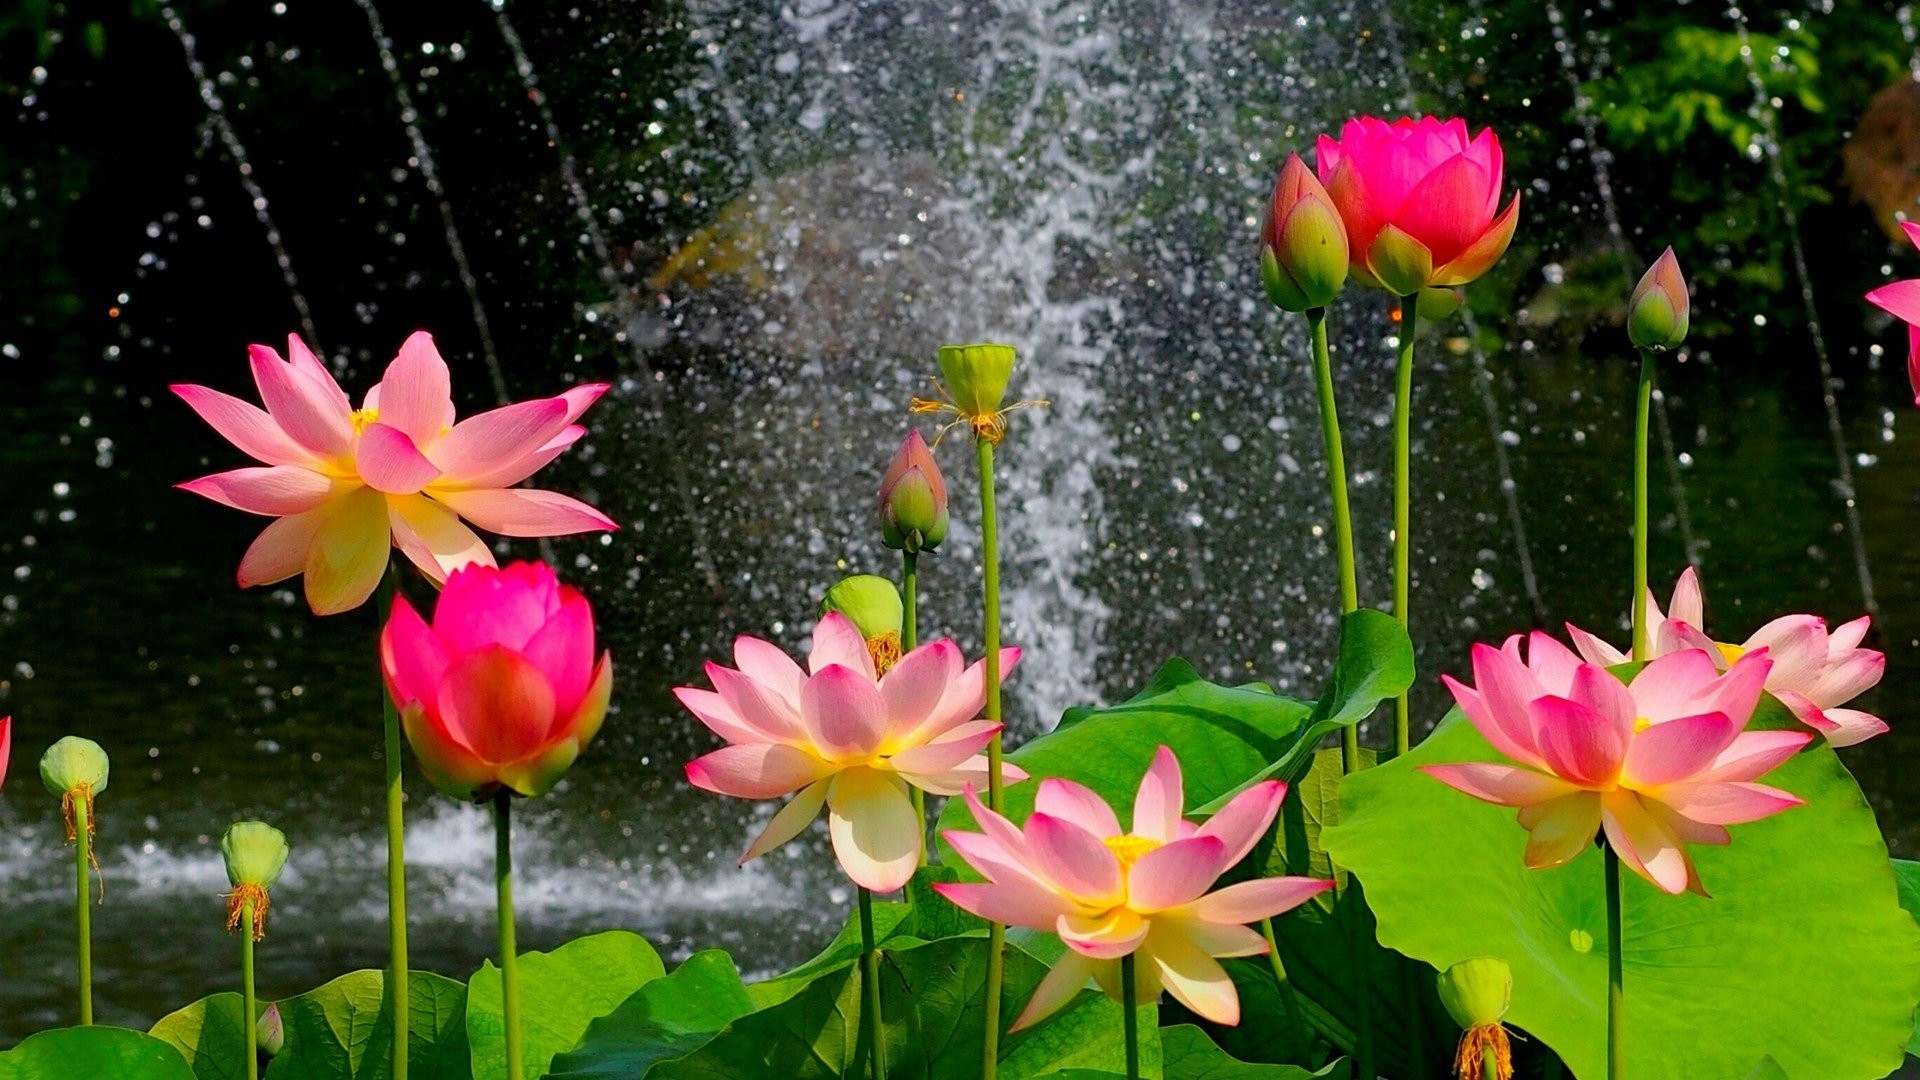 Lotus flower wallpapers 67 background pictures 1710x2137 1710x2137 lotus flower wallpaper and background 4758 izmirmasajfo